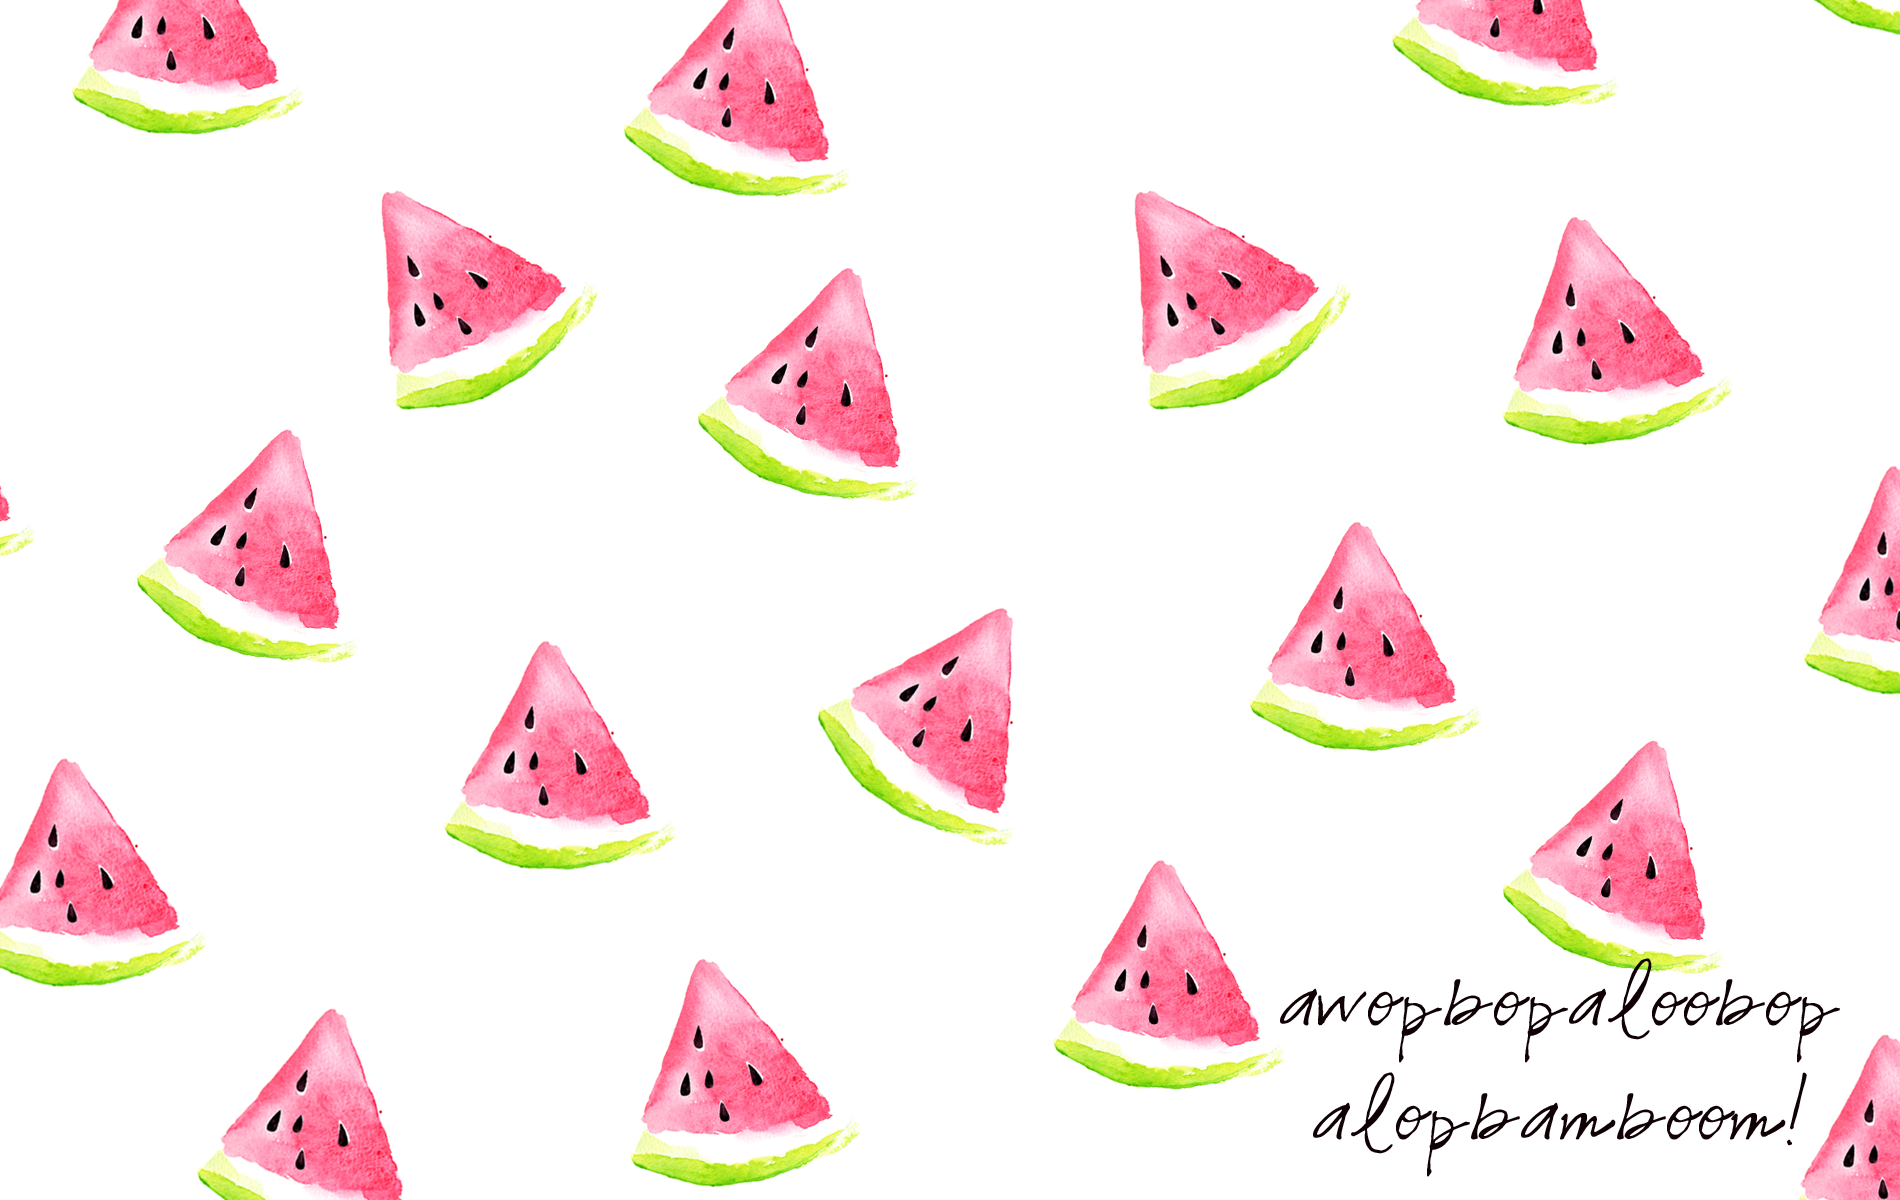 watermelon wallpaper android apps on google play | wallpapers